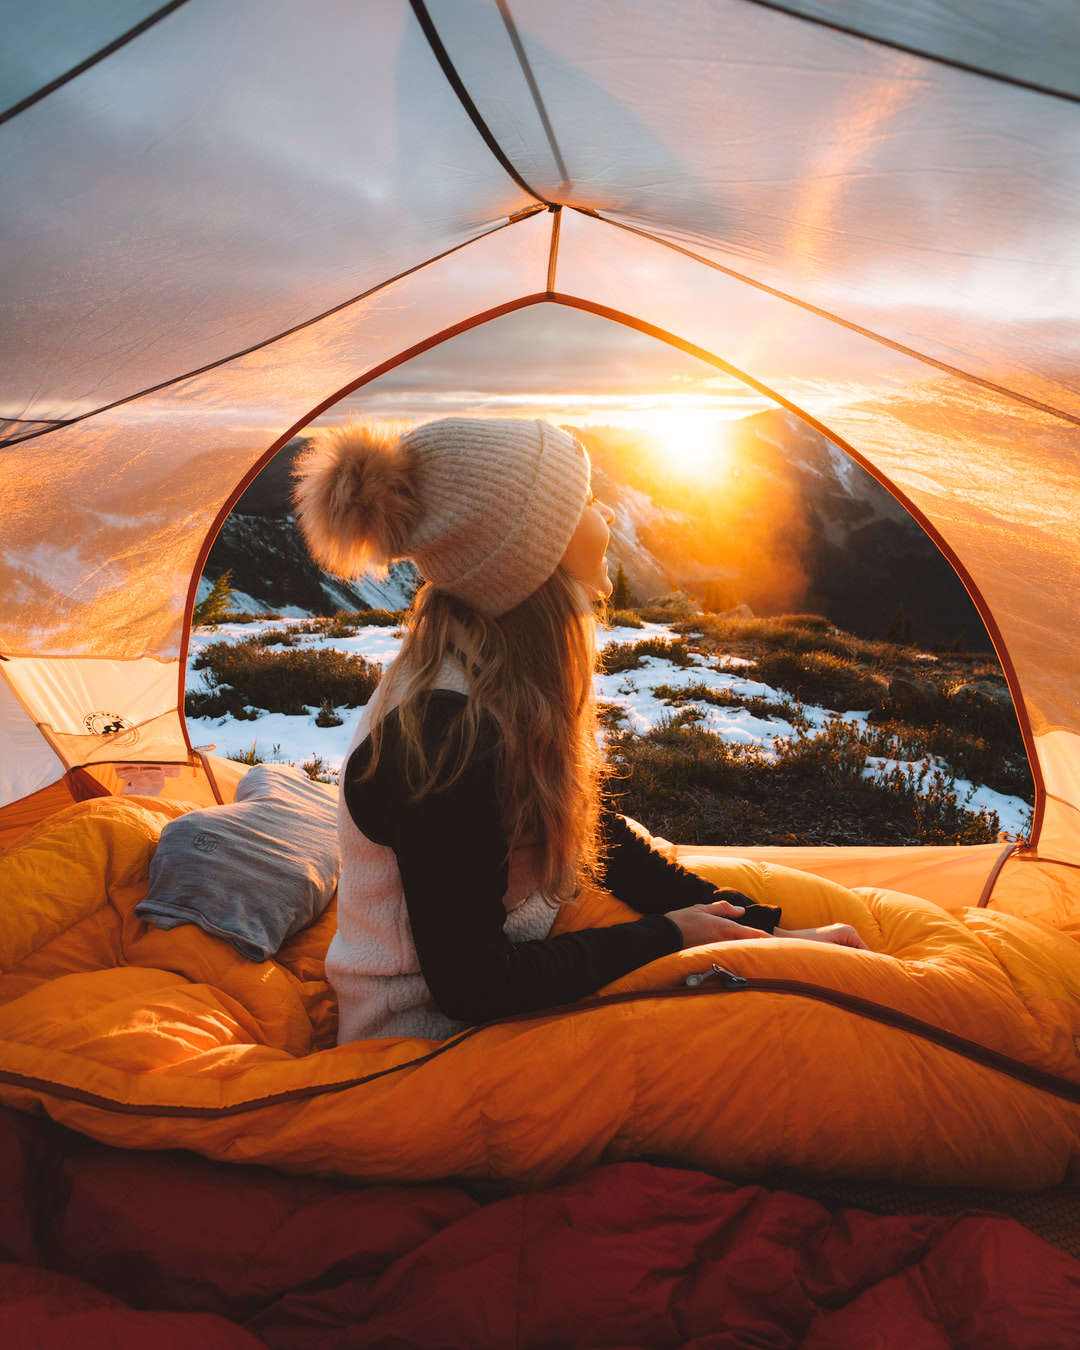 10 Tips for Getting a Good Night's Sleep when Backcountry Camping - Autumn